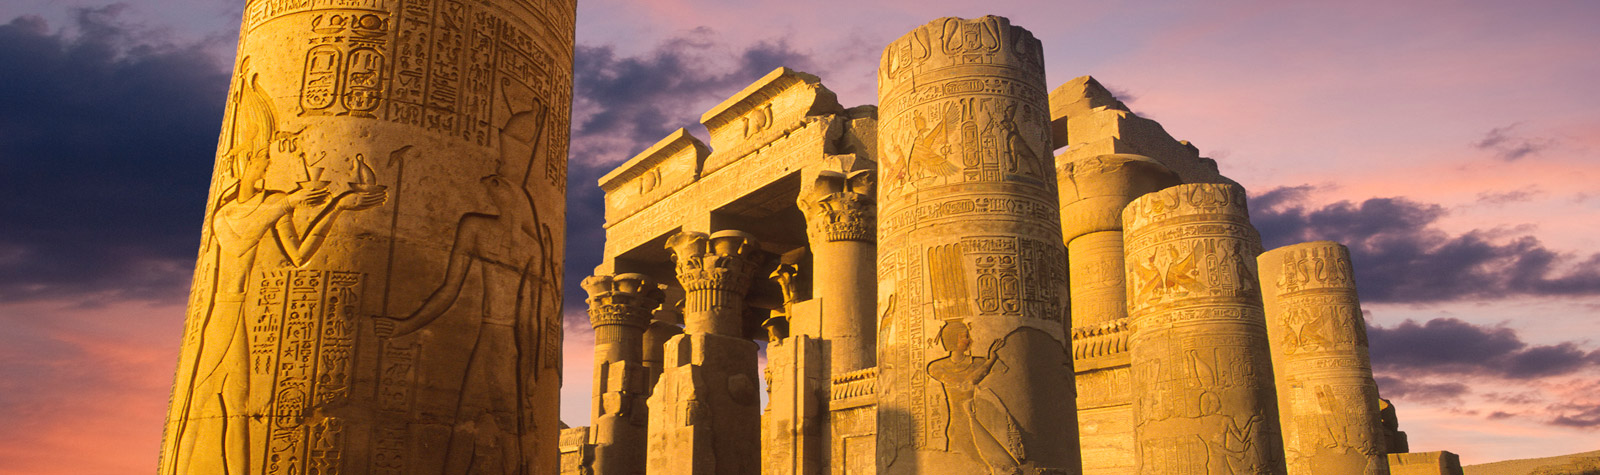 Excursions and Tours from Hurghada to Luxor